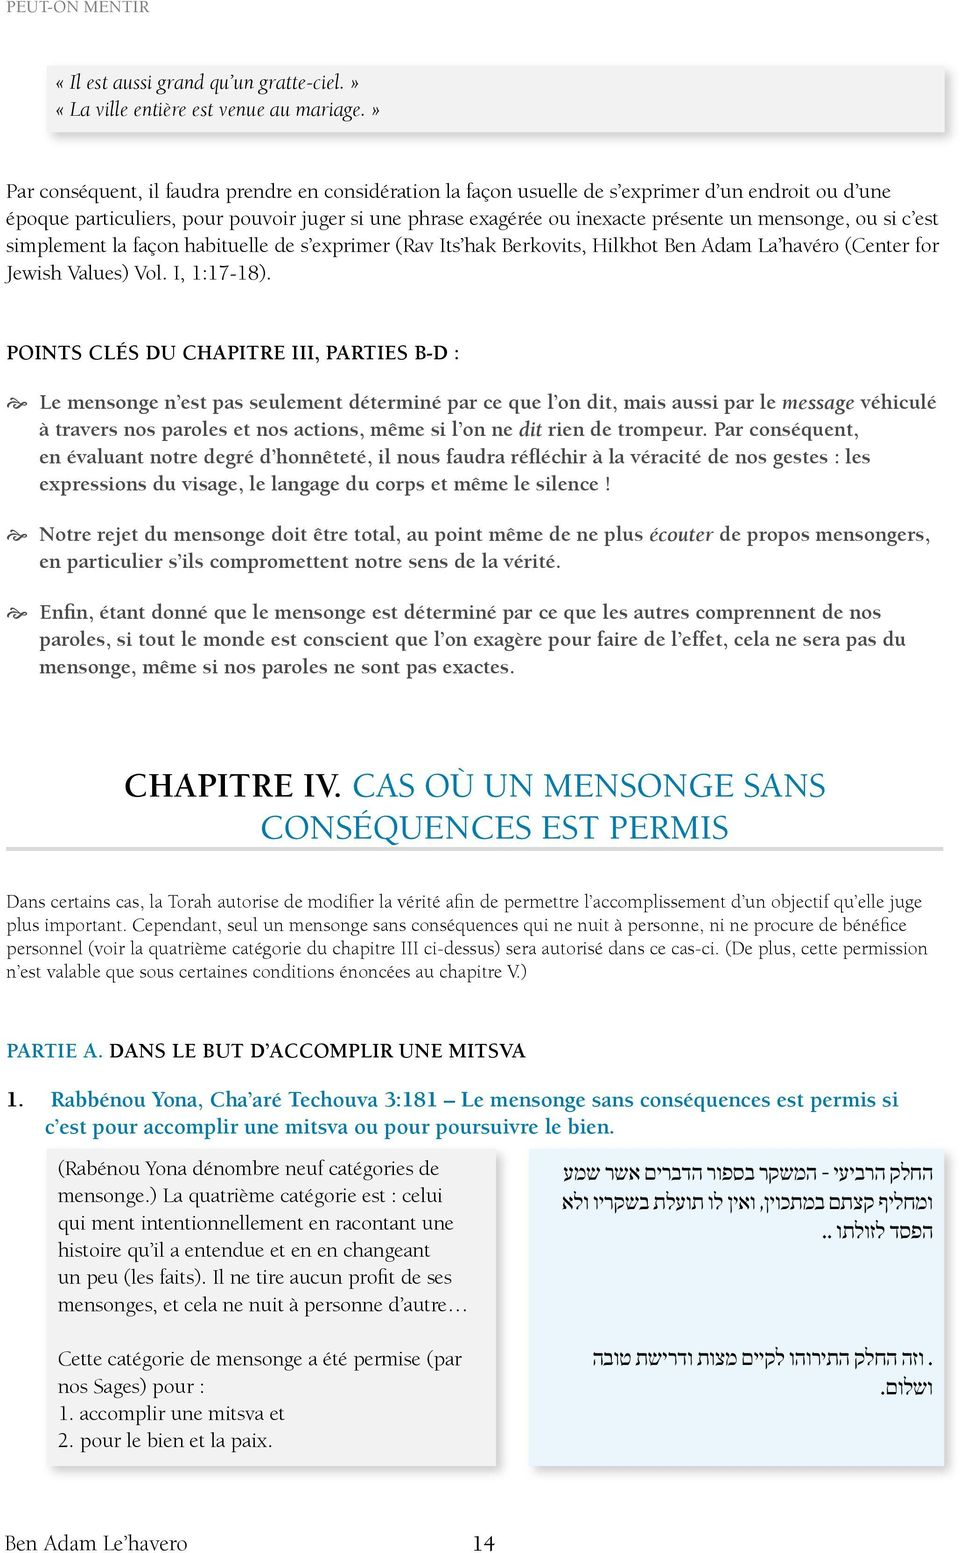 mensonge, ou si c est simplement la façon habituelle de s exprimer (Rav Its hak Berkovits, Hilkhot Ben Adam La havéro (Center for Jewish Values) Vol. I, 1:17-18).